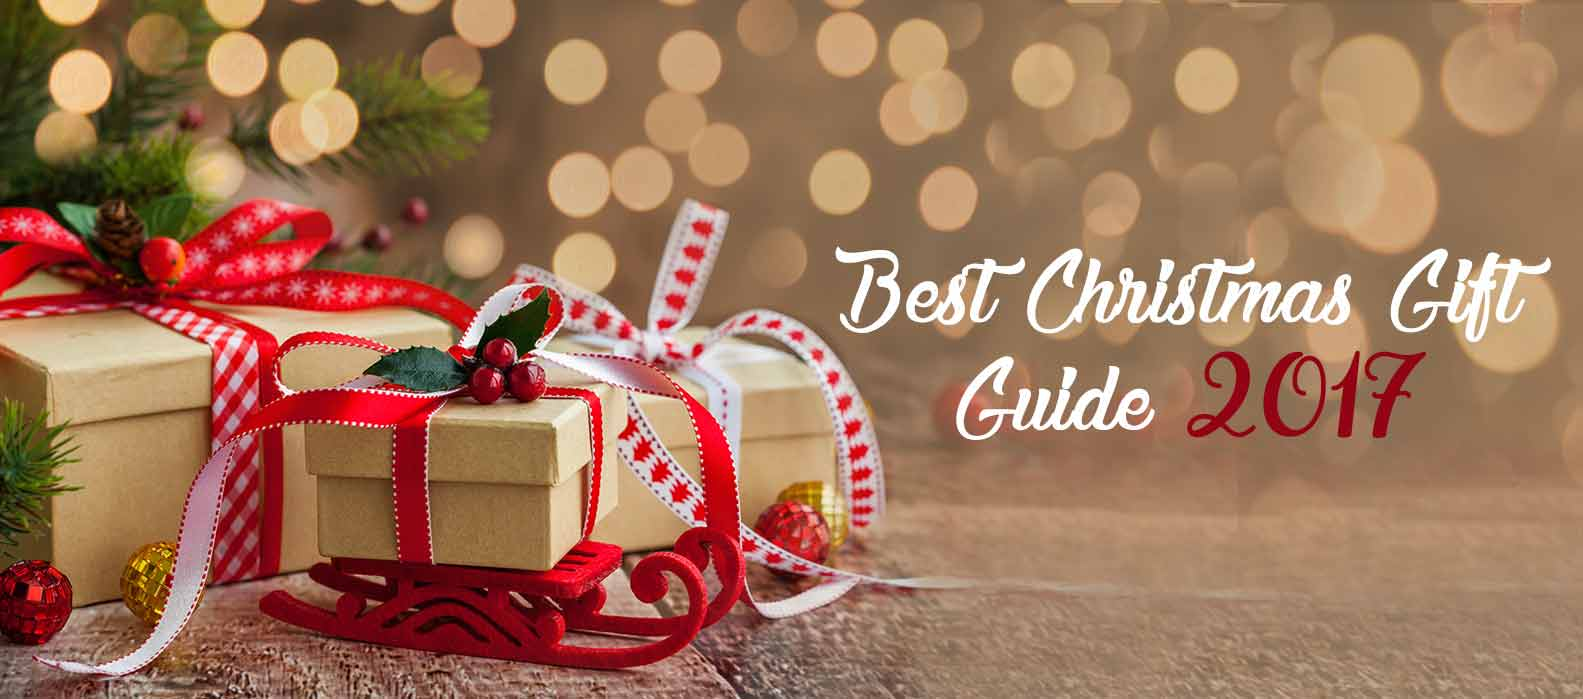 Best Christmas Gift Guide 2017